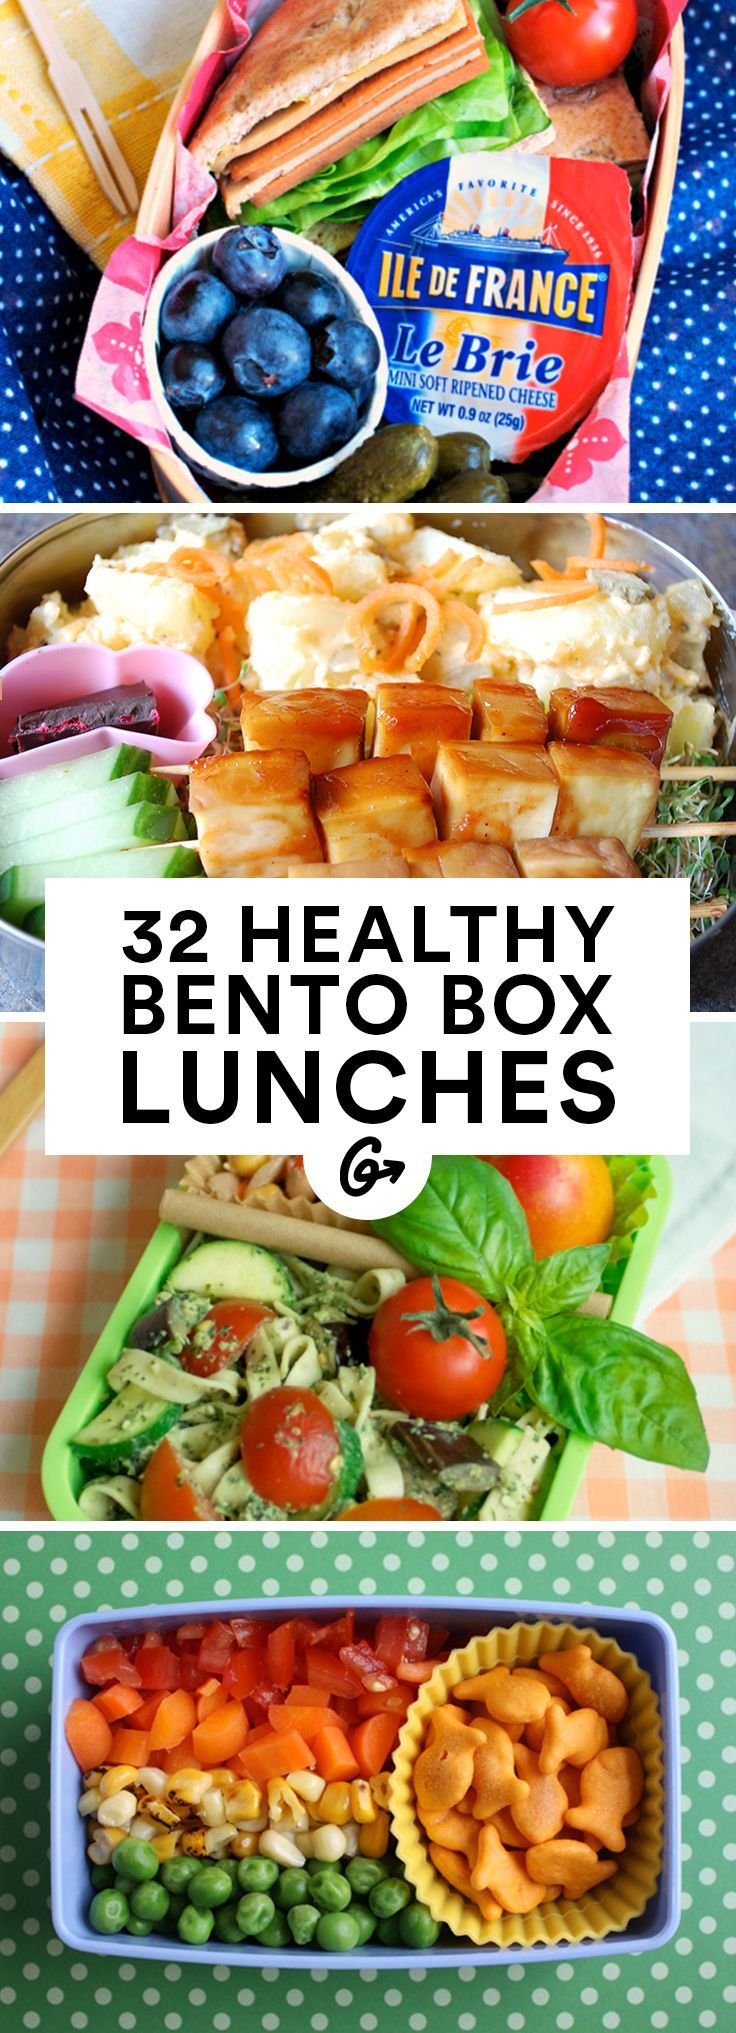 25 best ideas about best bento box on pinterest bento box shop best kids lunch box and bento. Black Bedroom Furniture Sets. Home Design Ideas